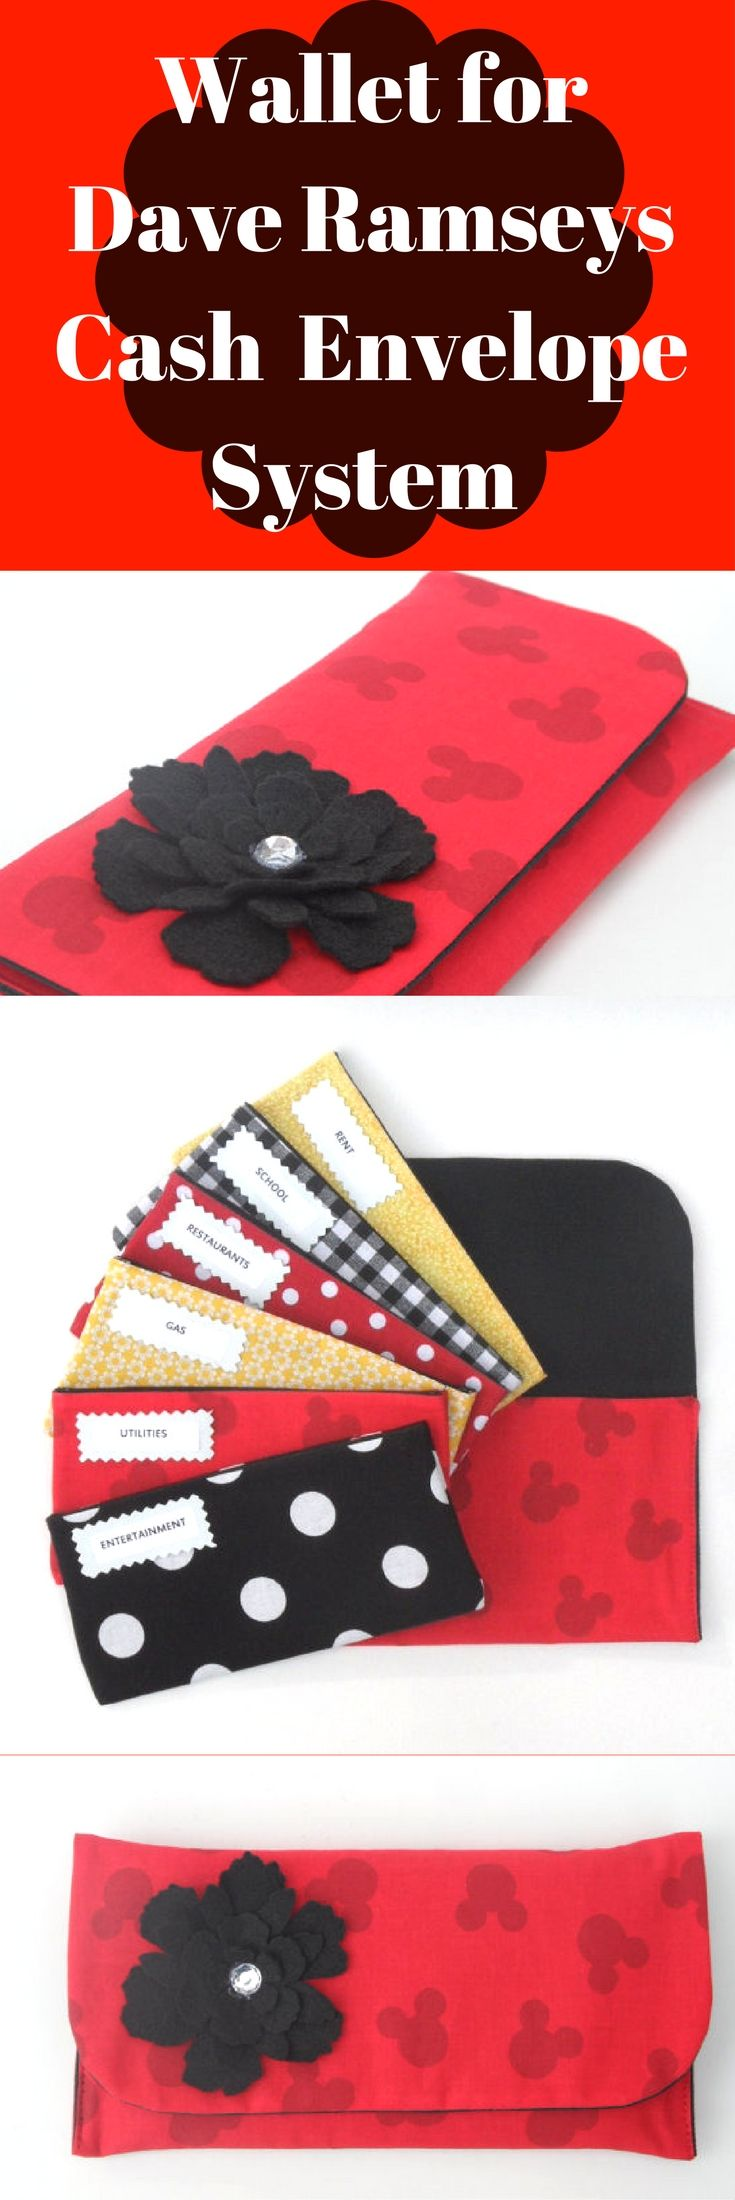 ♥**** This Cash Budget Envelope System is great for use with the Dave Ramsey System****♥ Cash Envelope Budget System is a great way to gain control of your spending and save your hard earned money!!!!! #daveramsey #cashenvelopesystem #organization #frugal #finance #budgeting #moneysense #affiliate